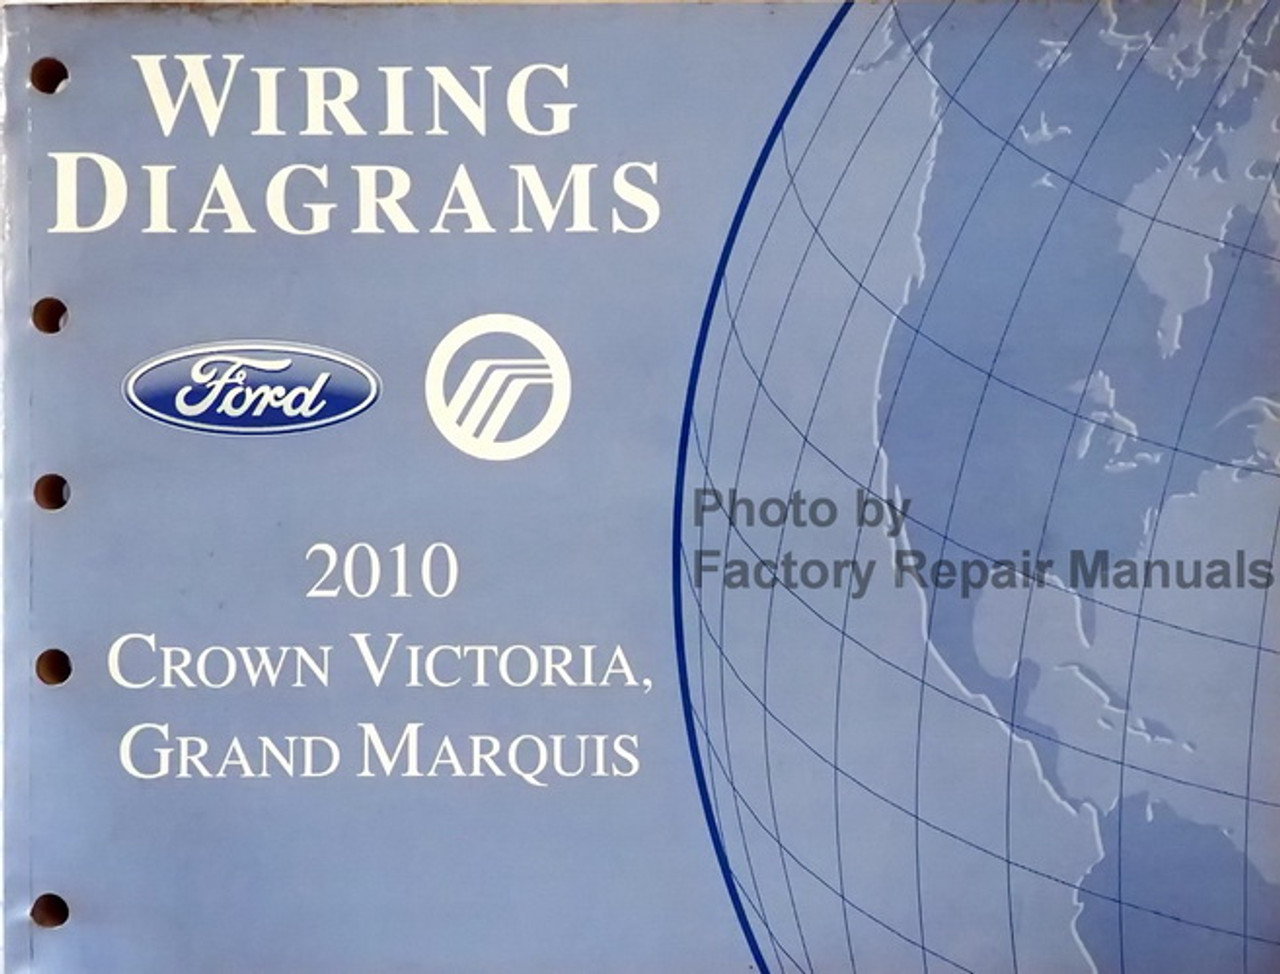 2010 Ford Crown Victoria Mercury Grand Marquis Electrical Wiring Diagrams Factory Repair Manuals